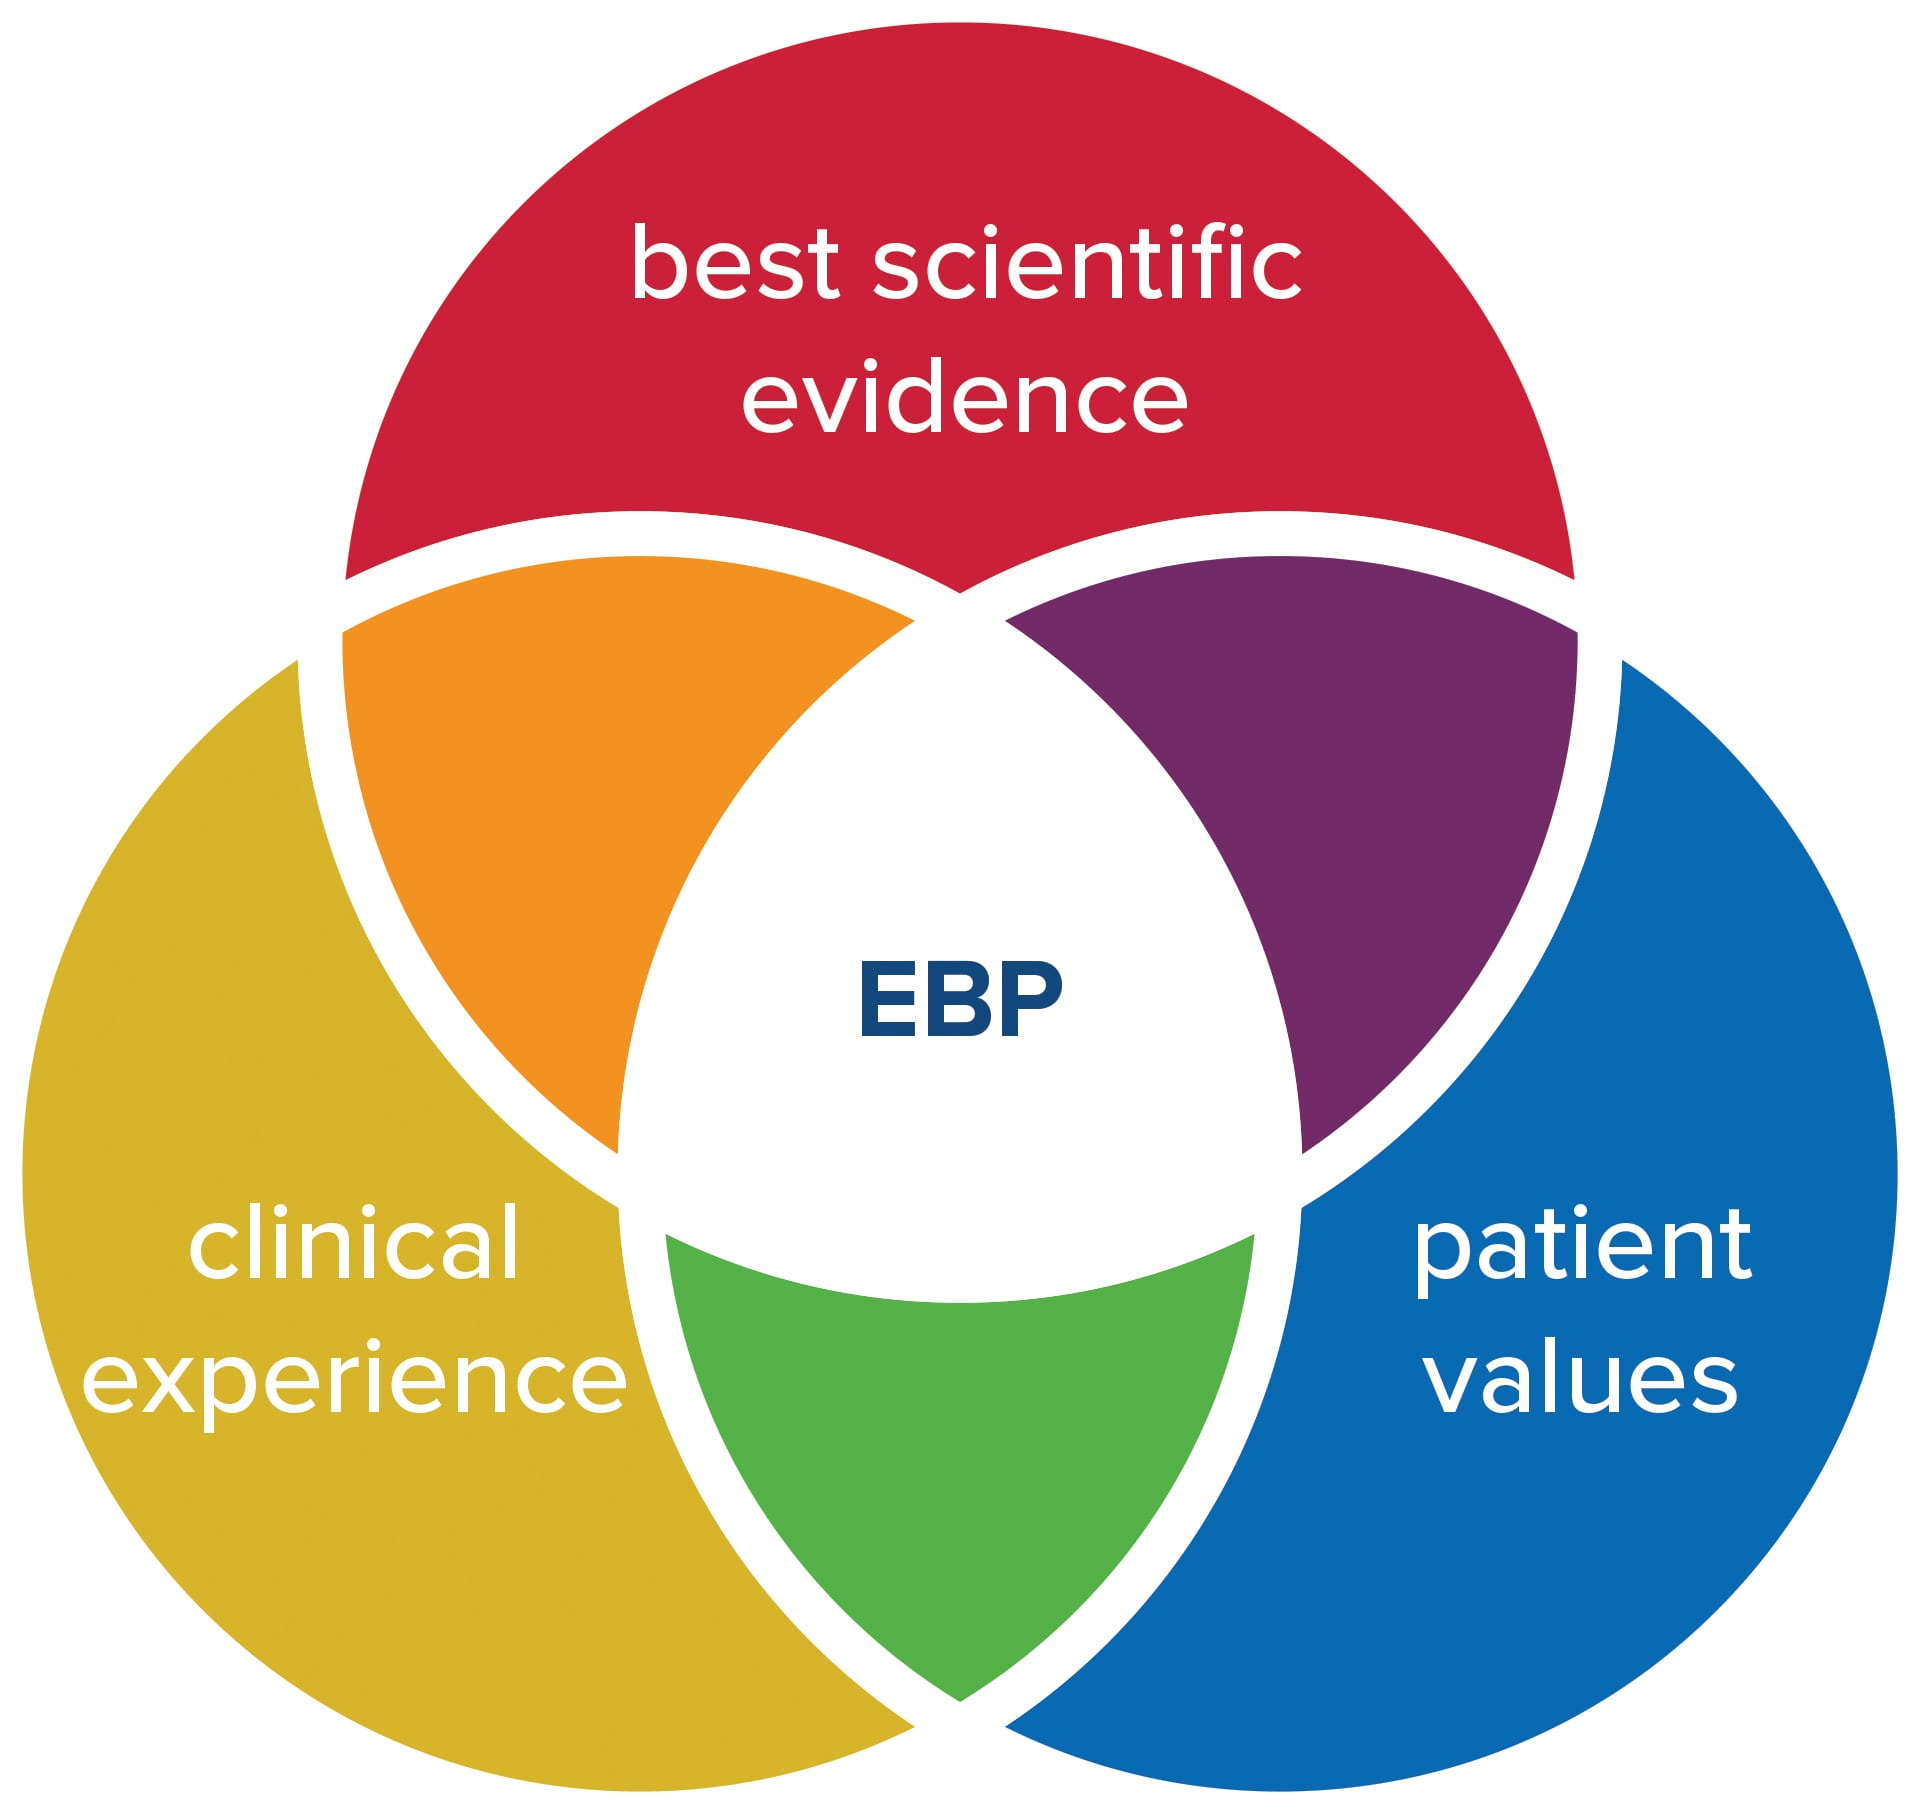 image of evidence based practice venn diagram